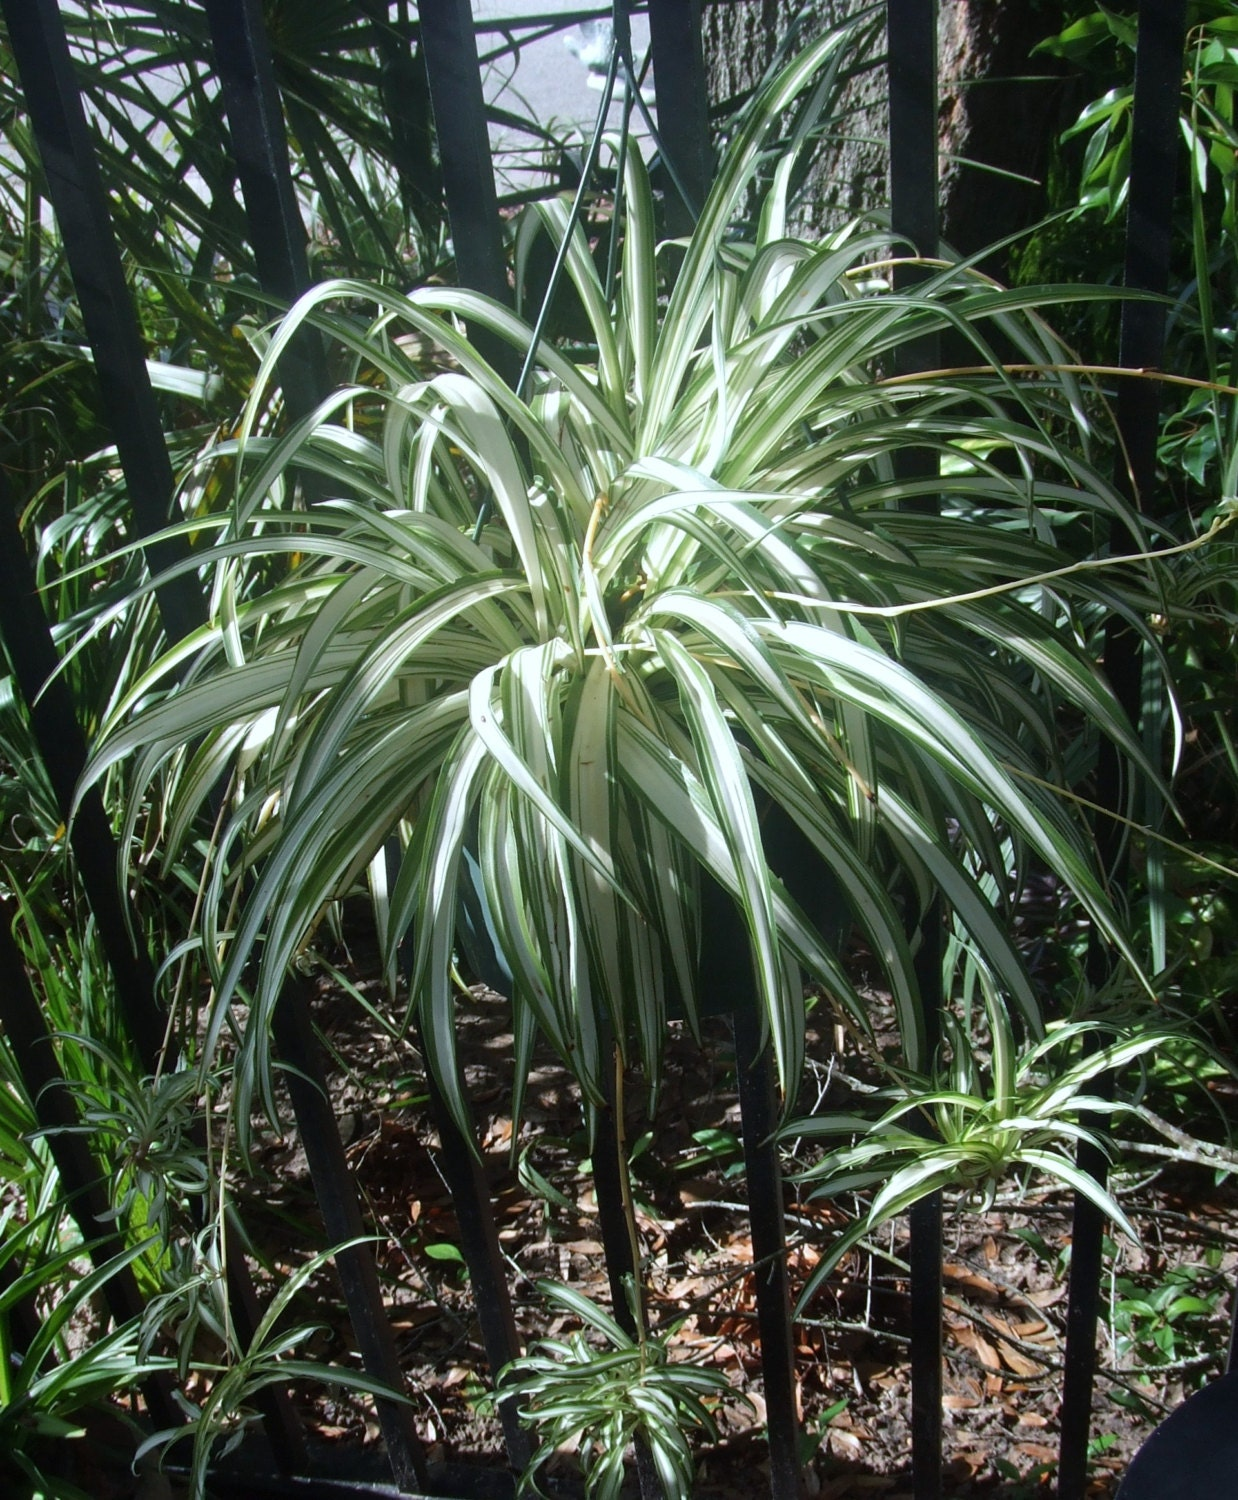 Spiderplant Care: Unavailable Listing On Etsy